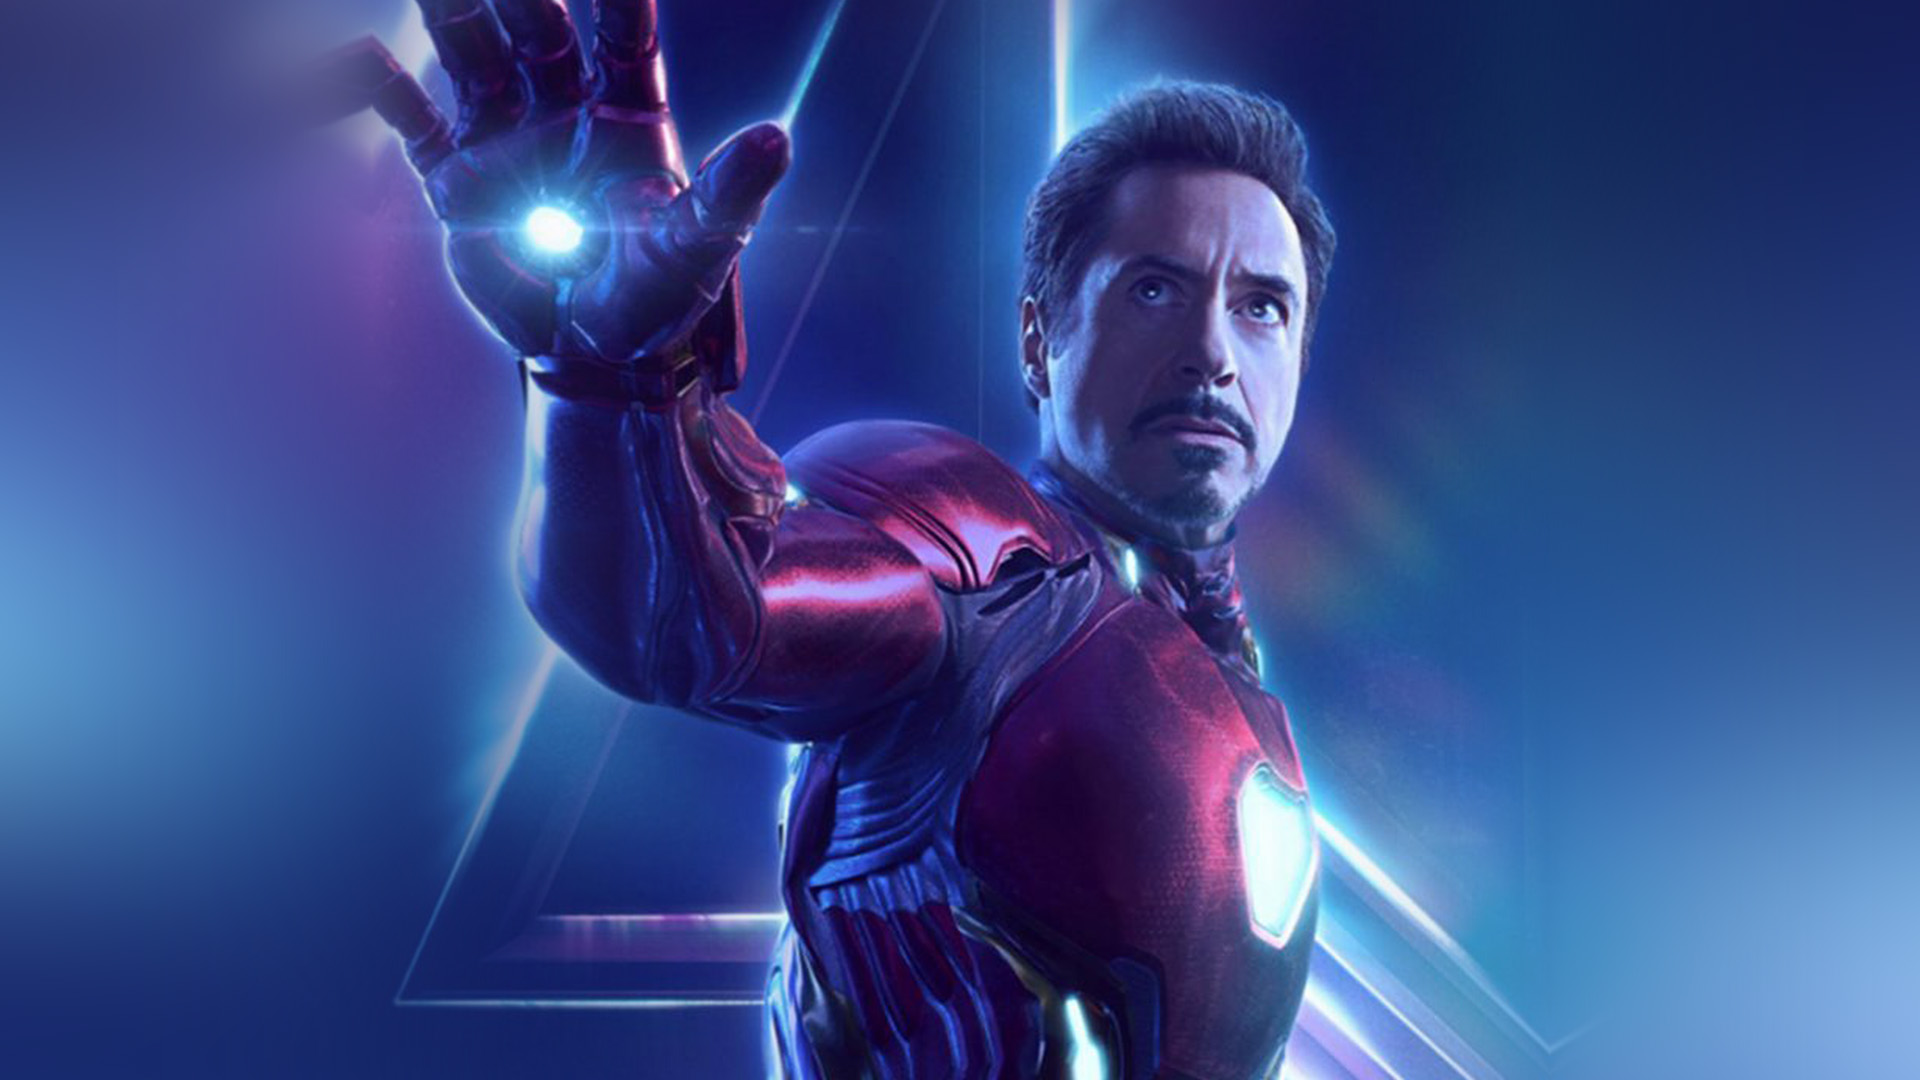 wallpaper for desktop, laptop | be89-ironman-hero-avengers ...